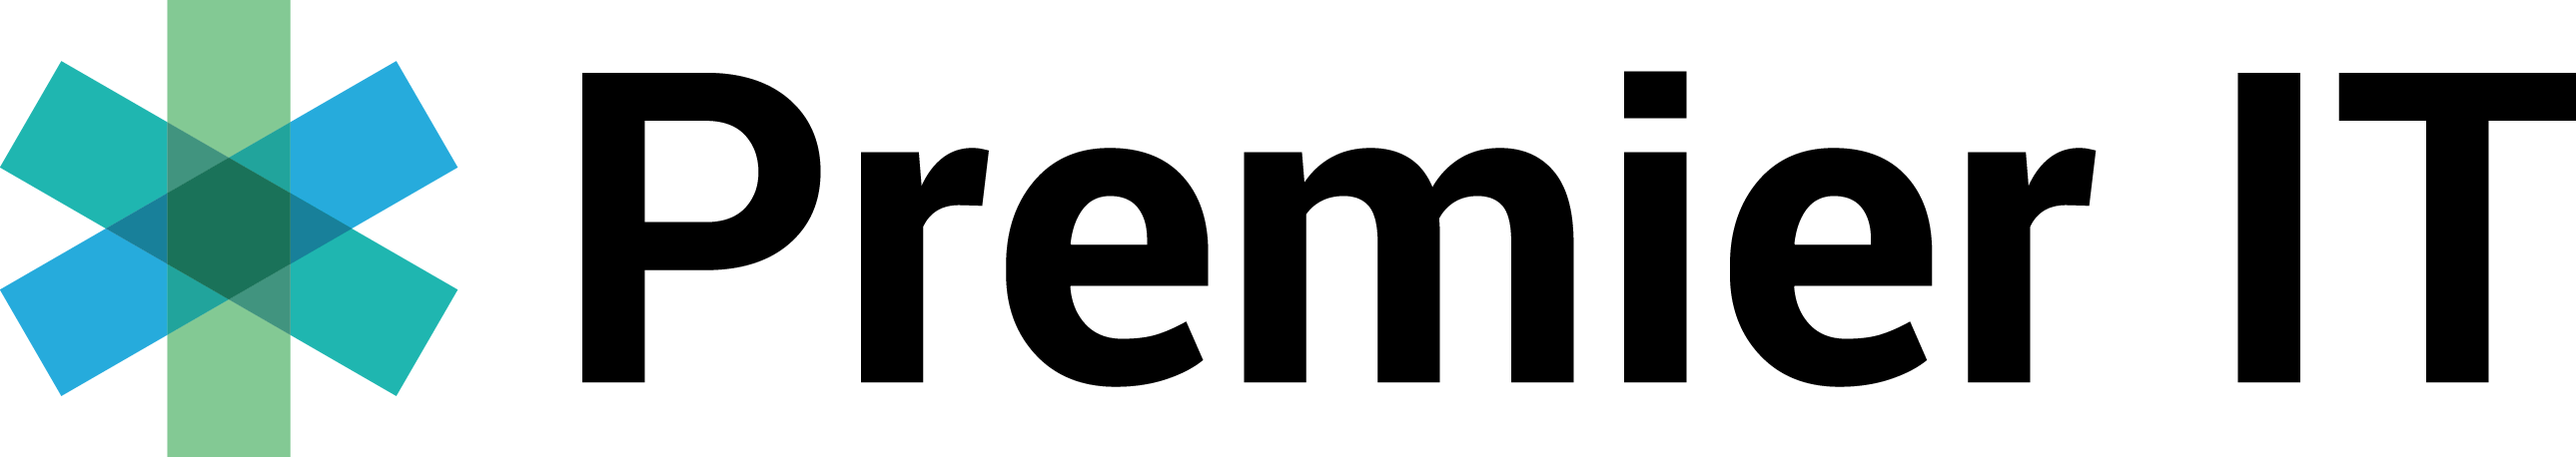 PremierIT black logo